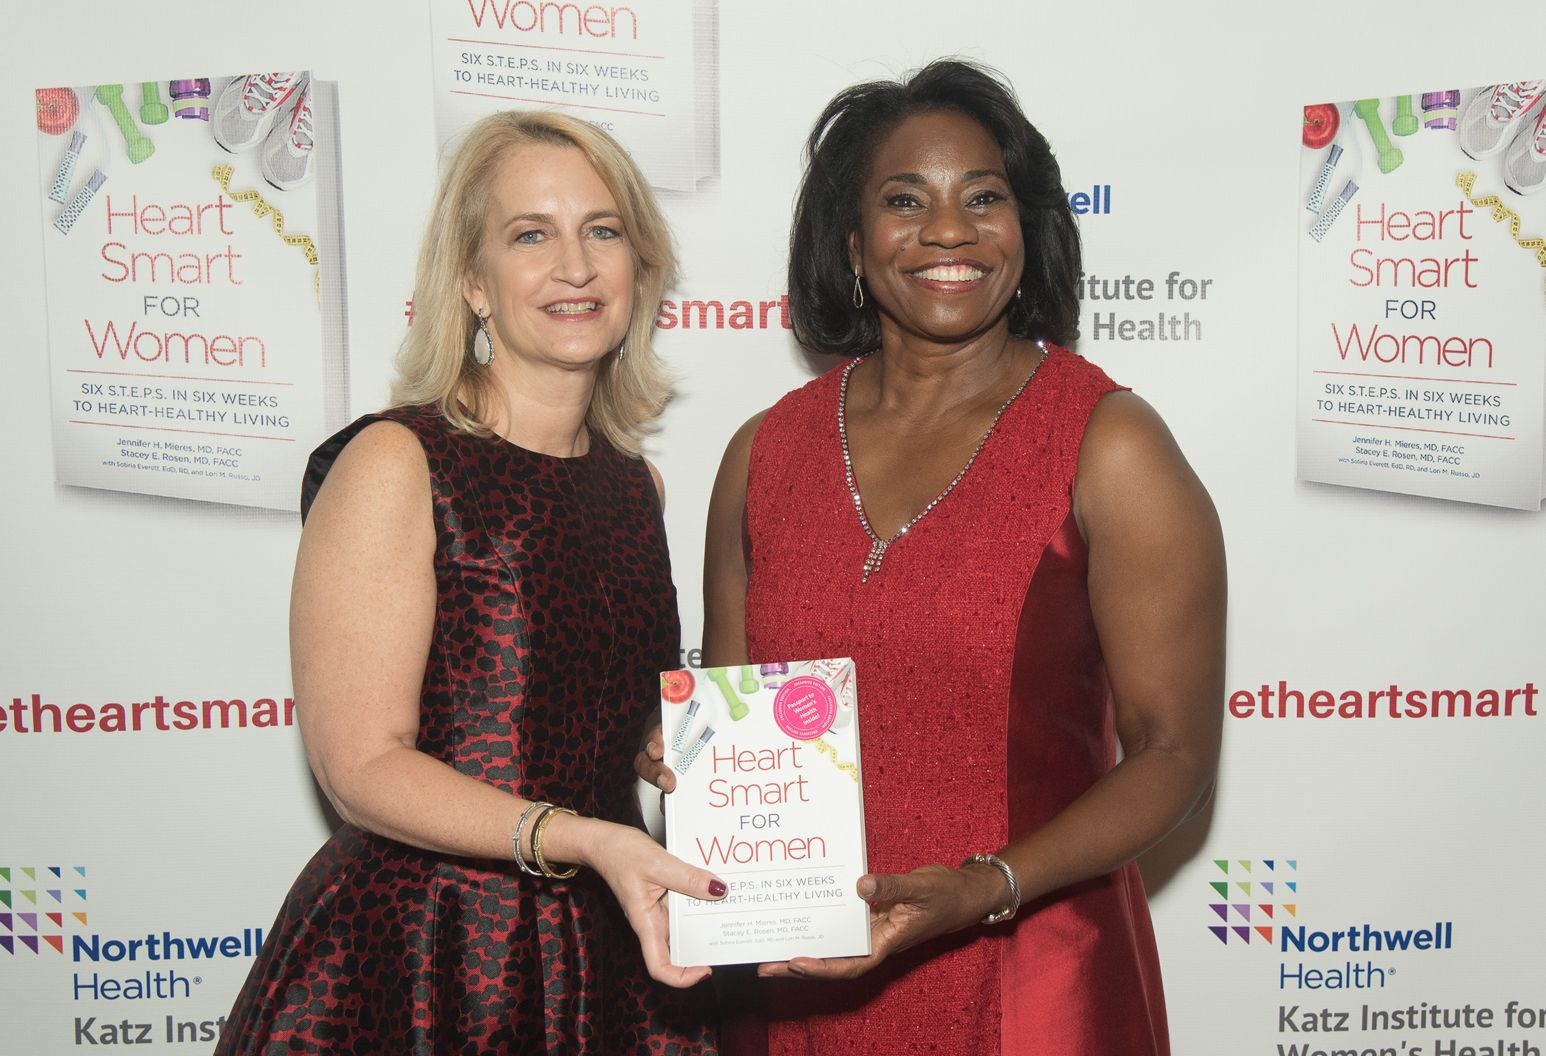 Stacey Rosen and Jennifer Mieres holding Heart Smart for Women